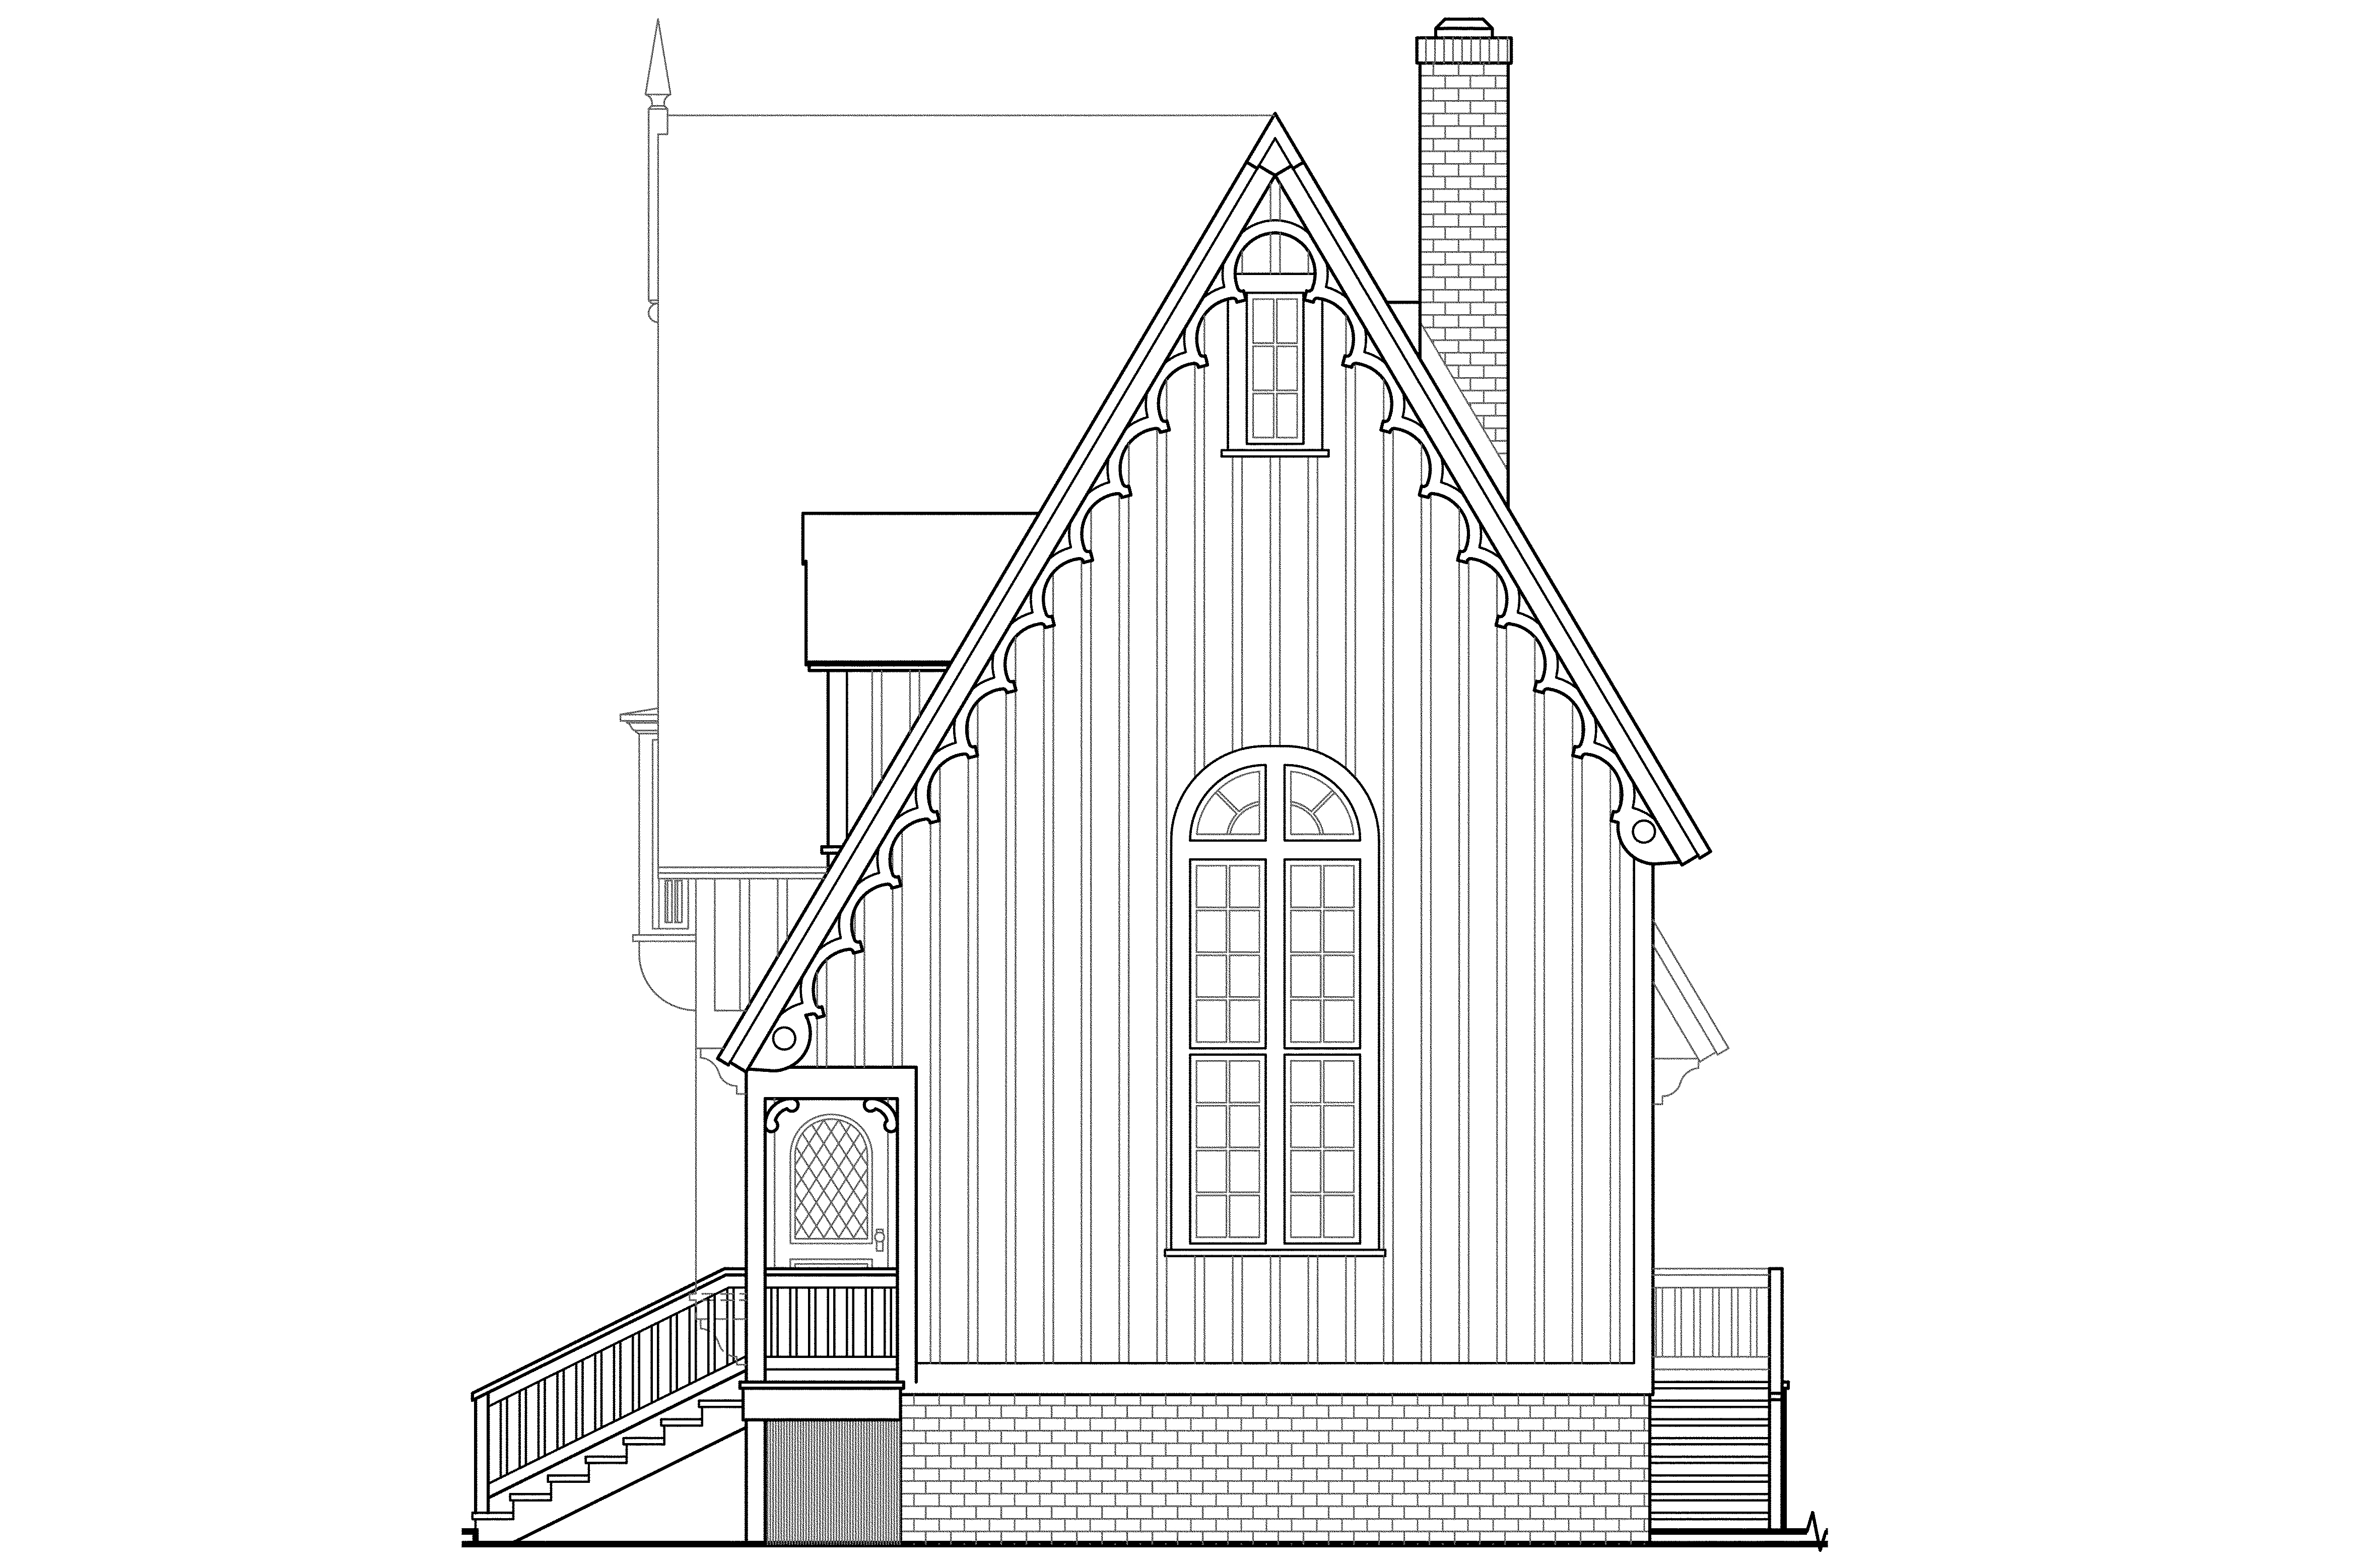 victorian house plans langston 42 027 associated designs narrow lot house plan langston 42 027 left elevation